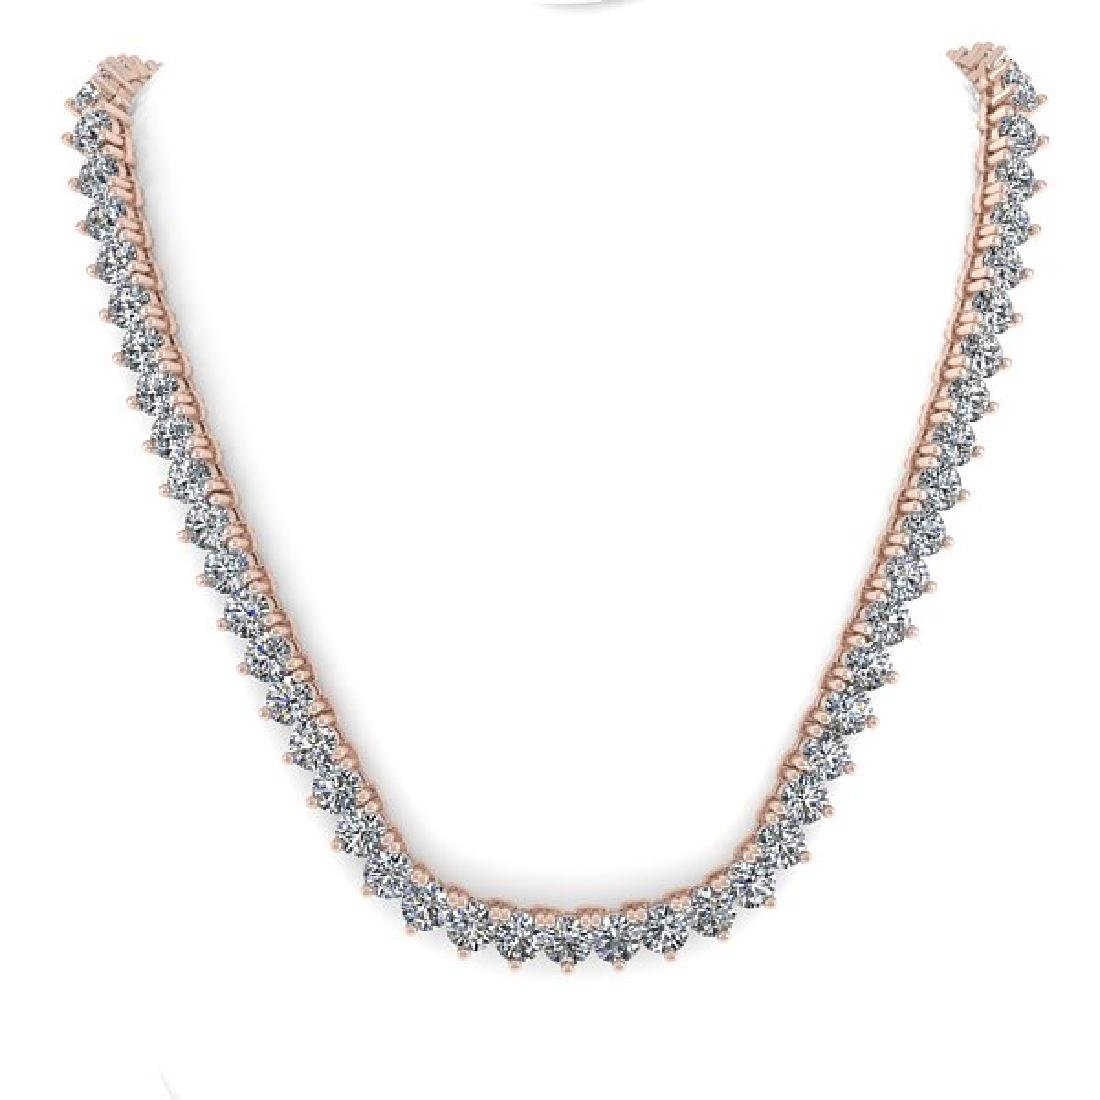 45 CTW Solitaire SI Diamond Necklace 18K Rose Gold - 3